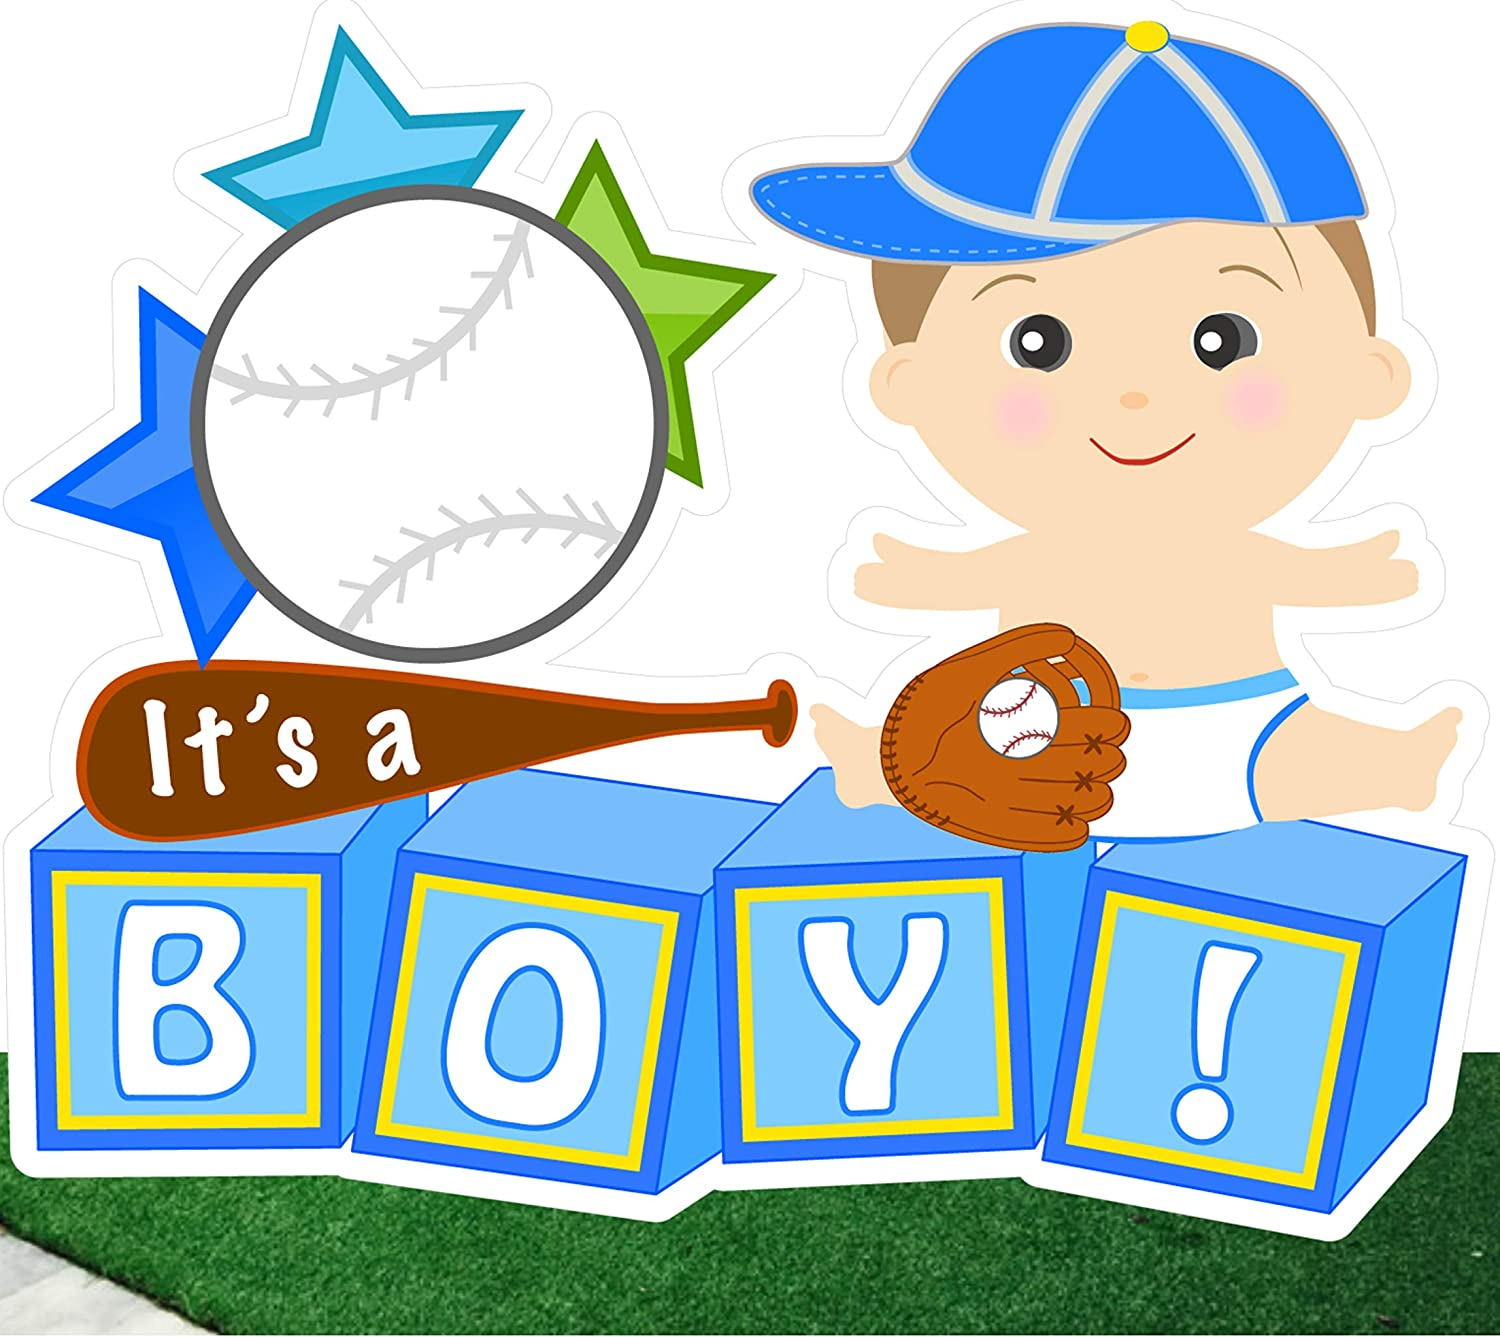 Cute News It's a Boy Baby Yard Sign Announcement - Welcome Home Newborn Birth Lawn Art Decoration - Outdoor Special Delivery Baseball Sports - Blue